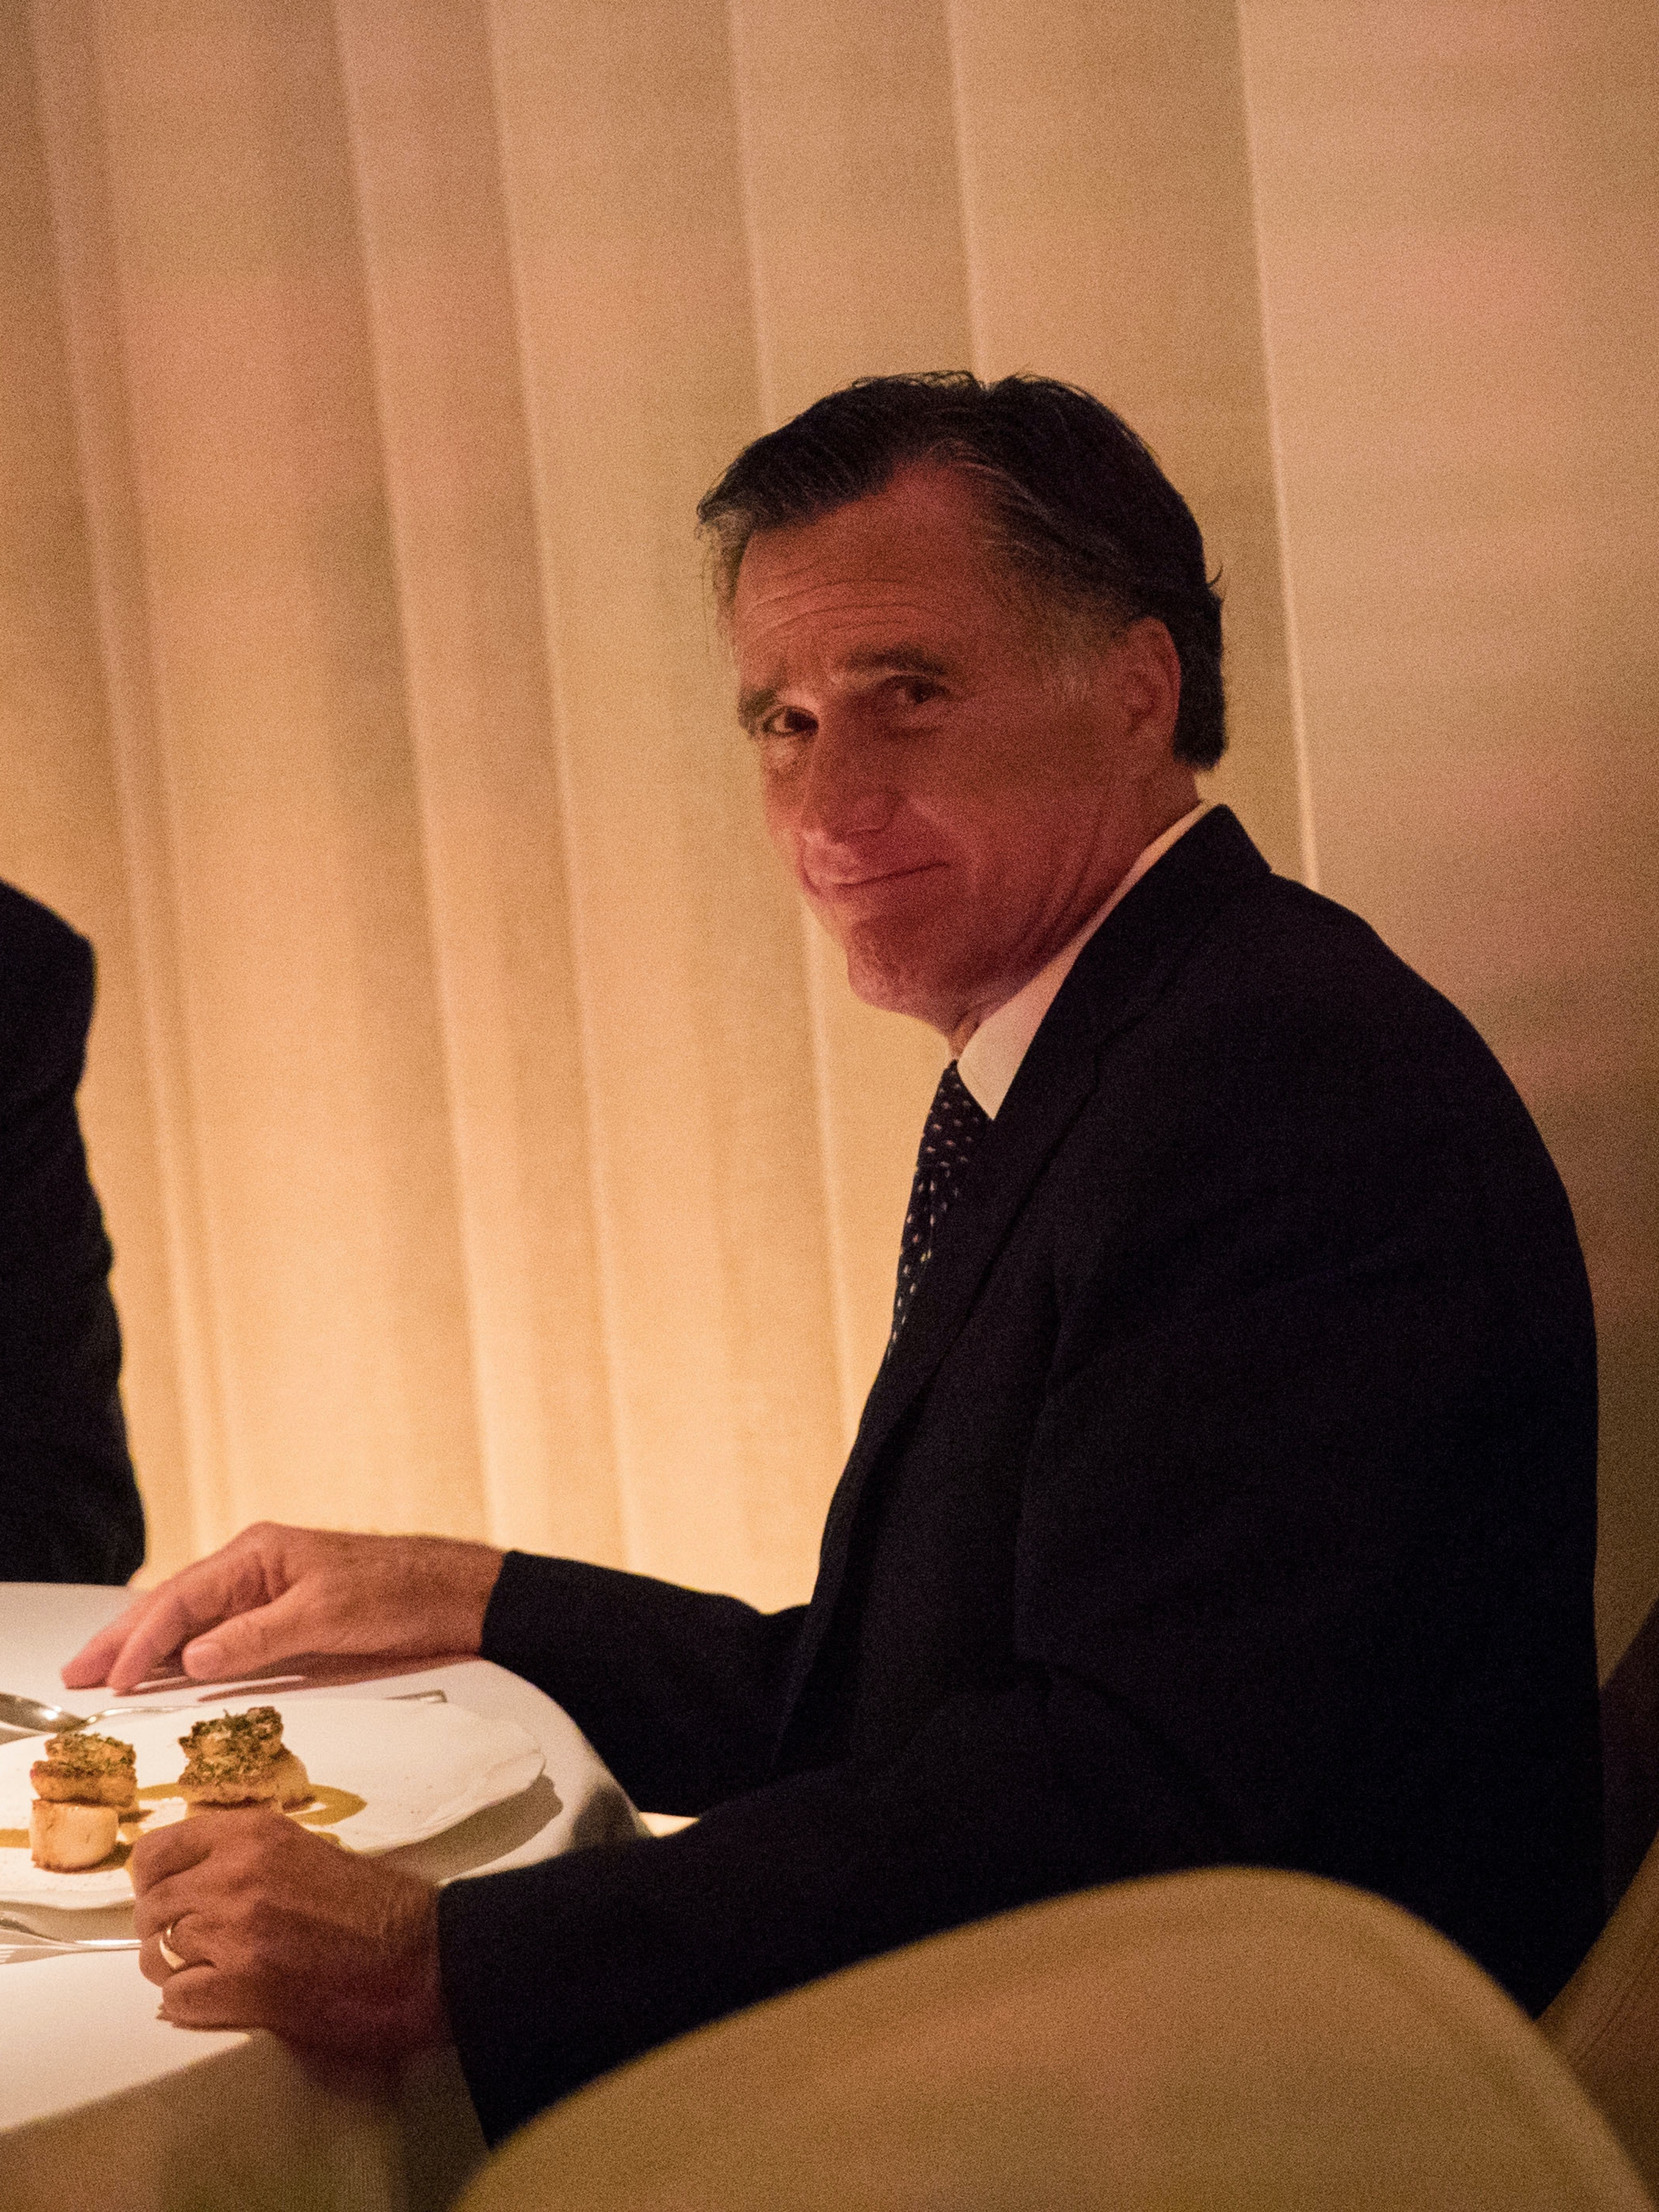 (L to R) President-elect Donald Trump and Mitt Romney dine at Jean Georges restaurant, November 29, 2016 in New York City. President-elect Donald Trump and his transition team are in the process of filling cabinet and other high level positions for the new administration.